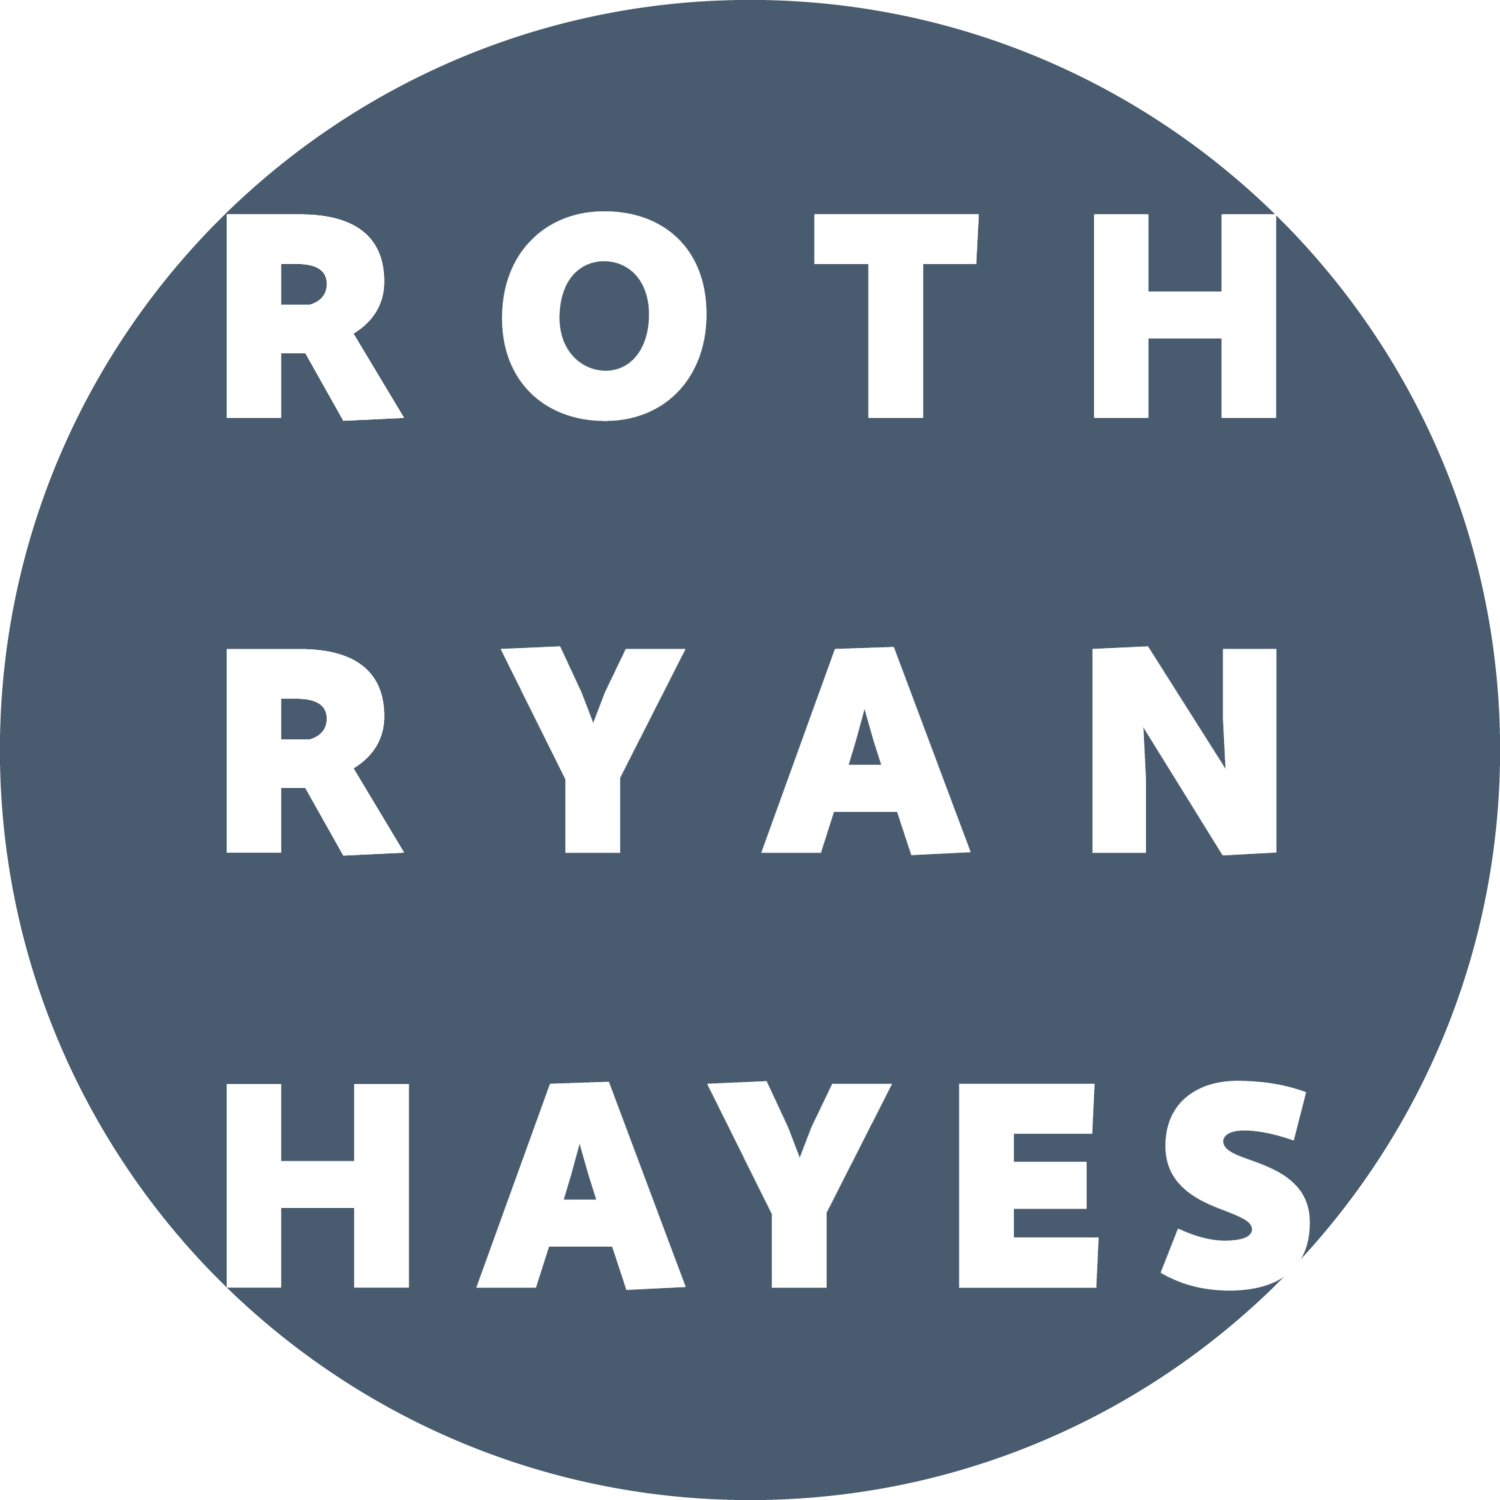 Roth Ryan Hayes